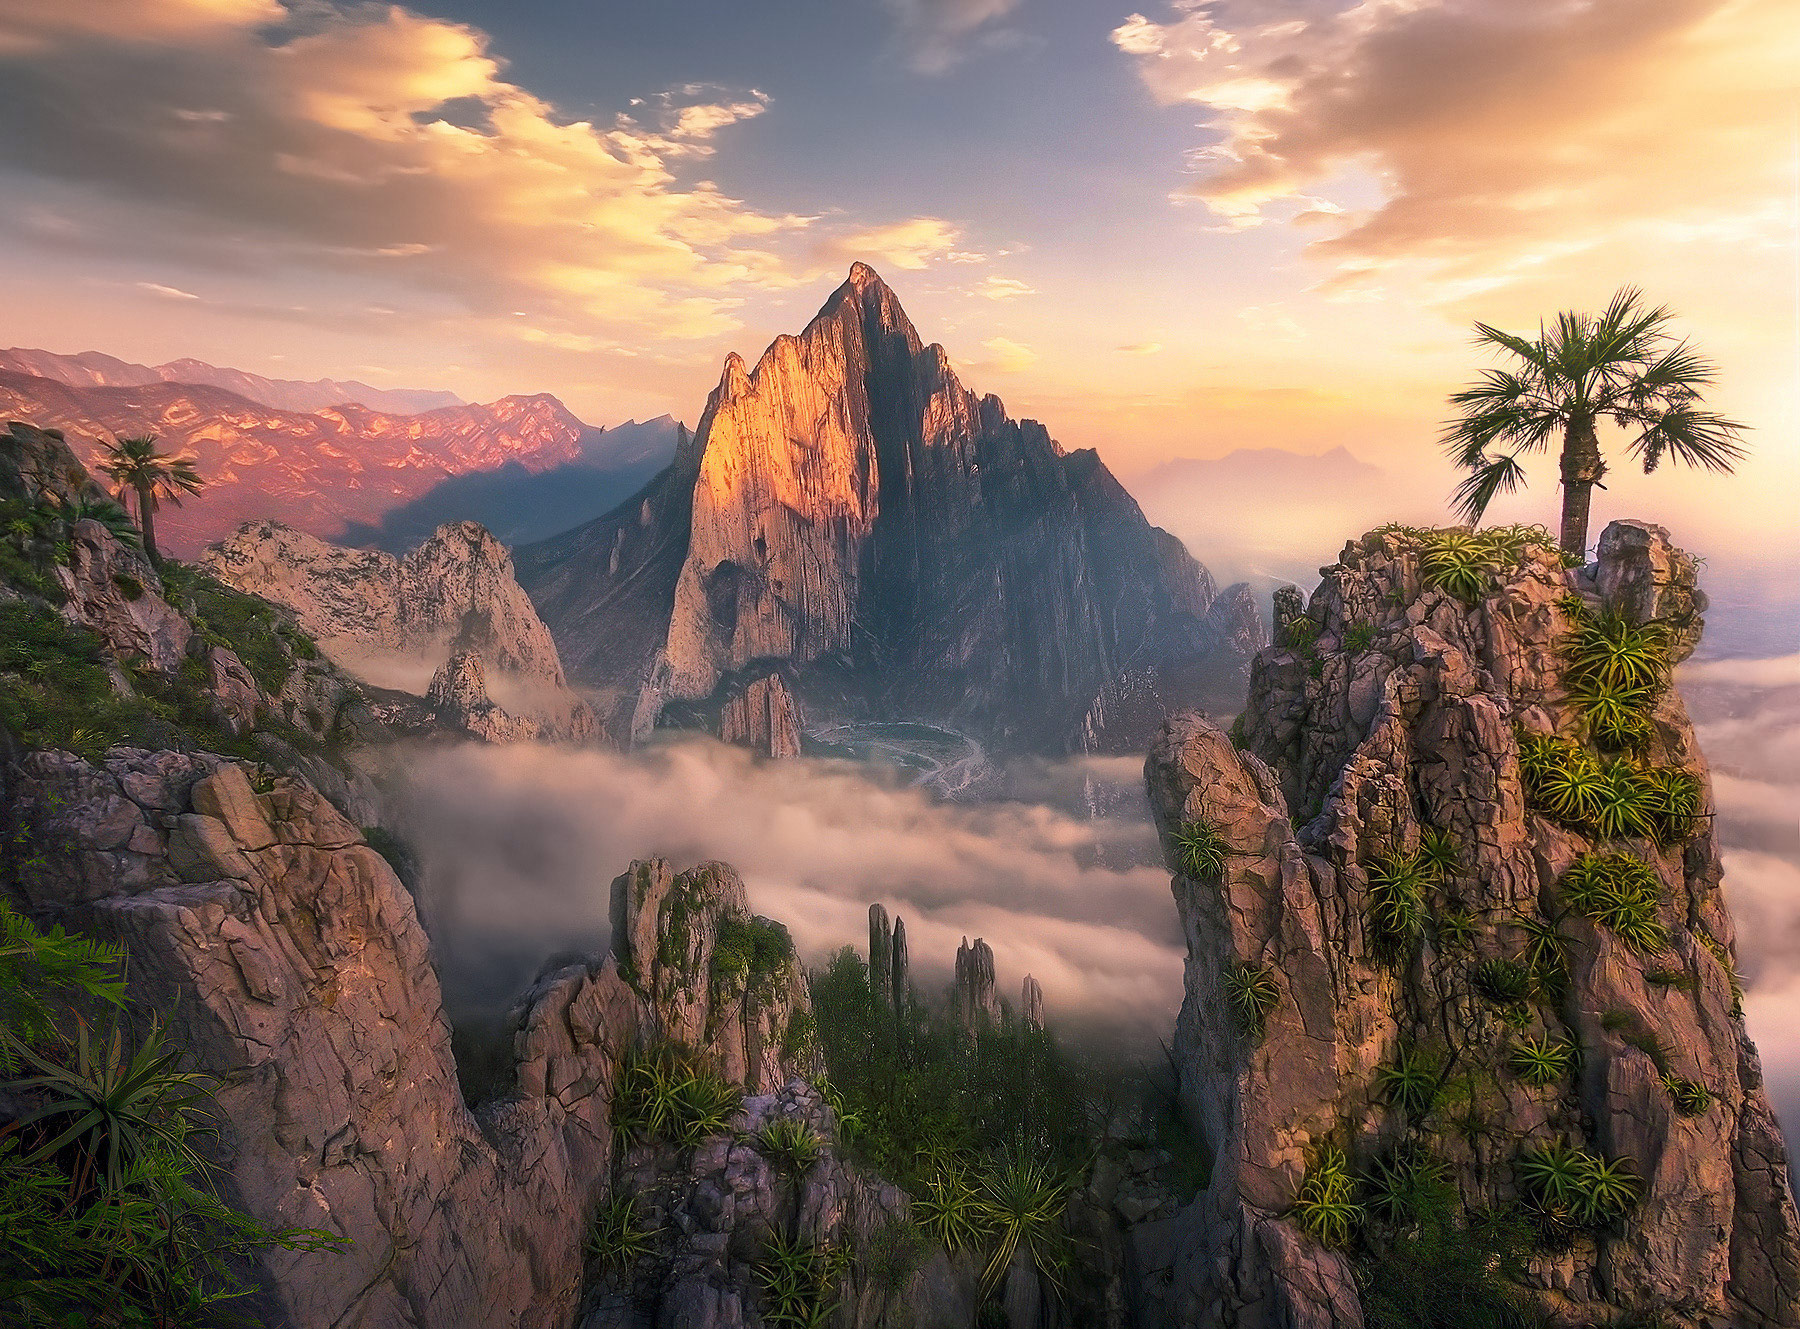 palm trees, Monterrey, peaks, jagged, cliffs, mountains, Mexico, sunrise